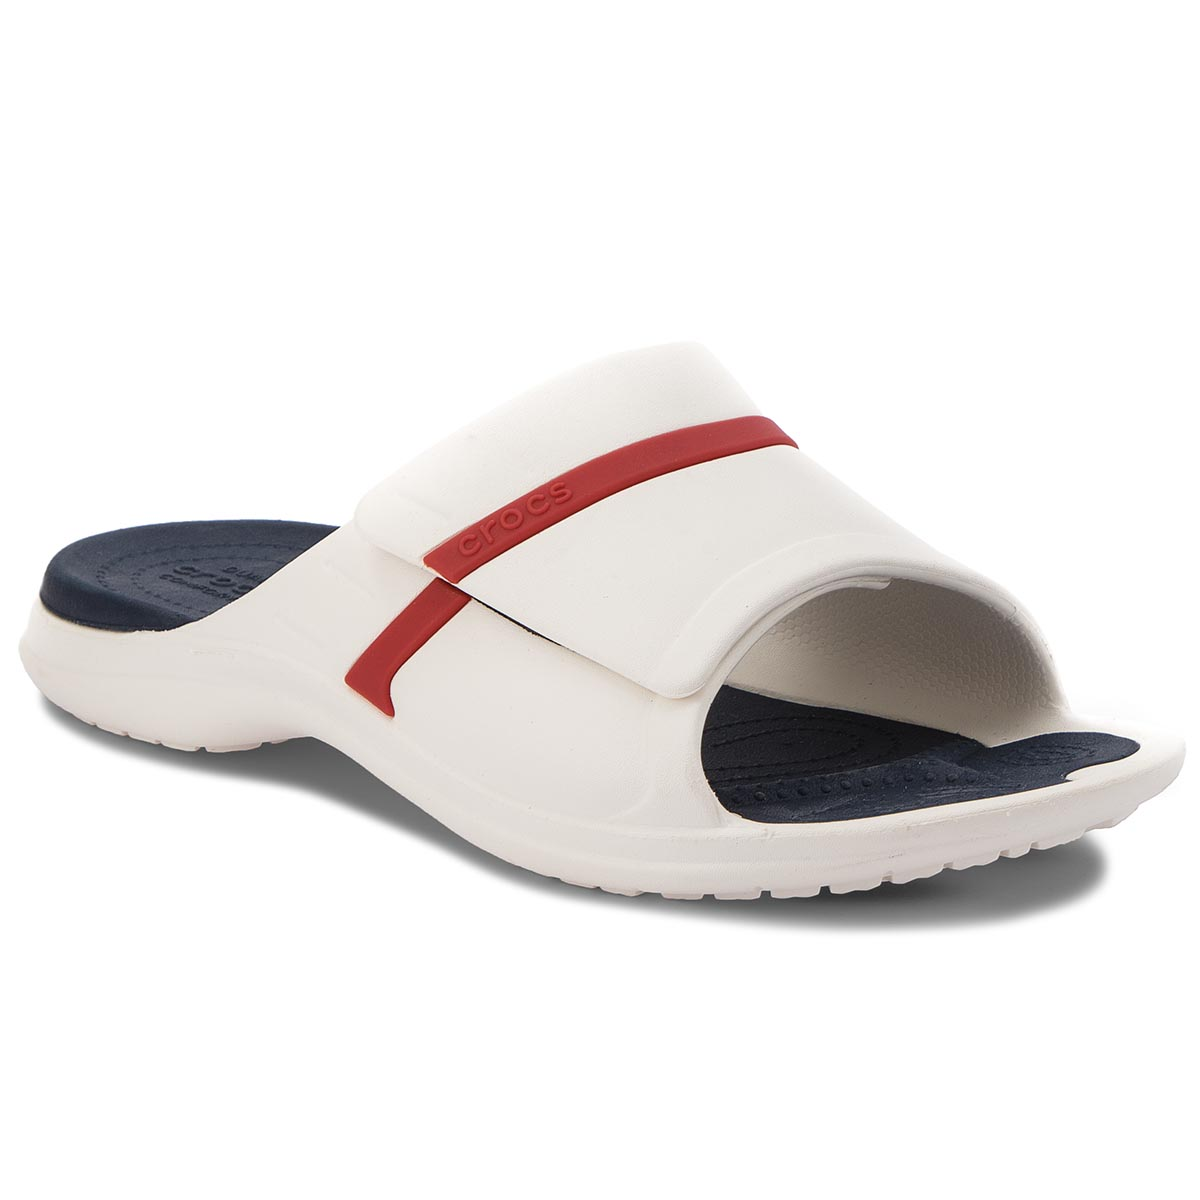 Klapki CROCS - Modi Sport Slide 204144 White/Navy/Pepper